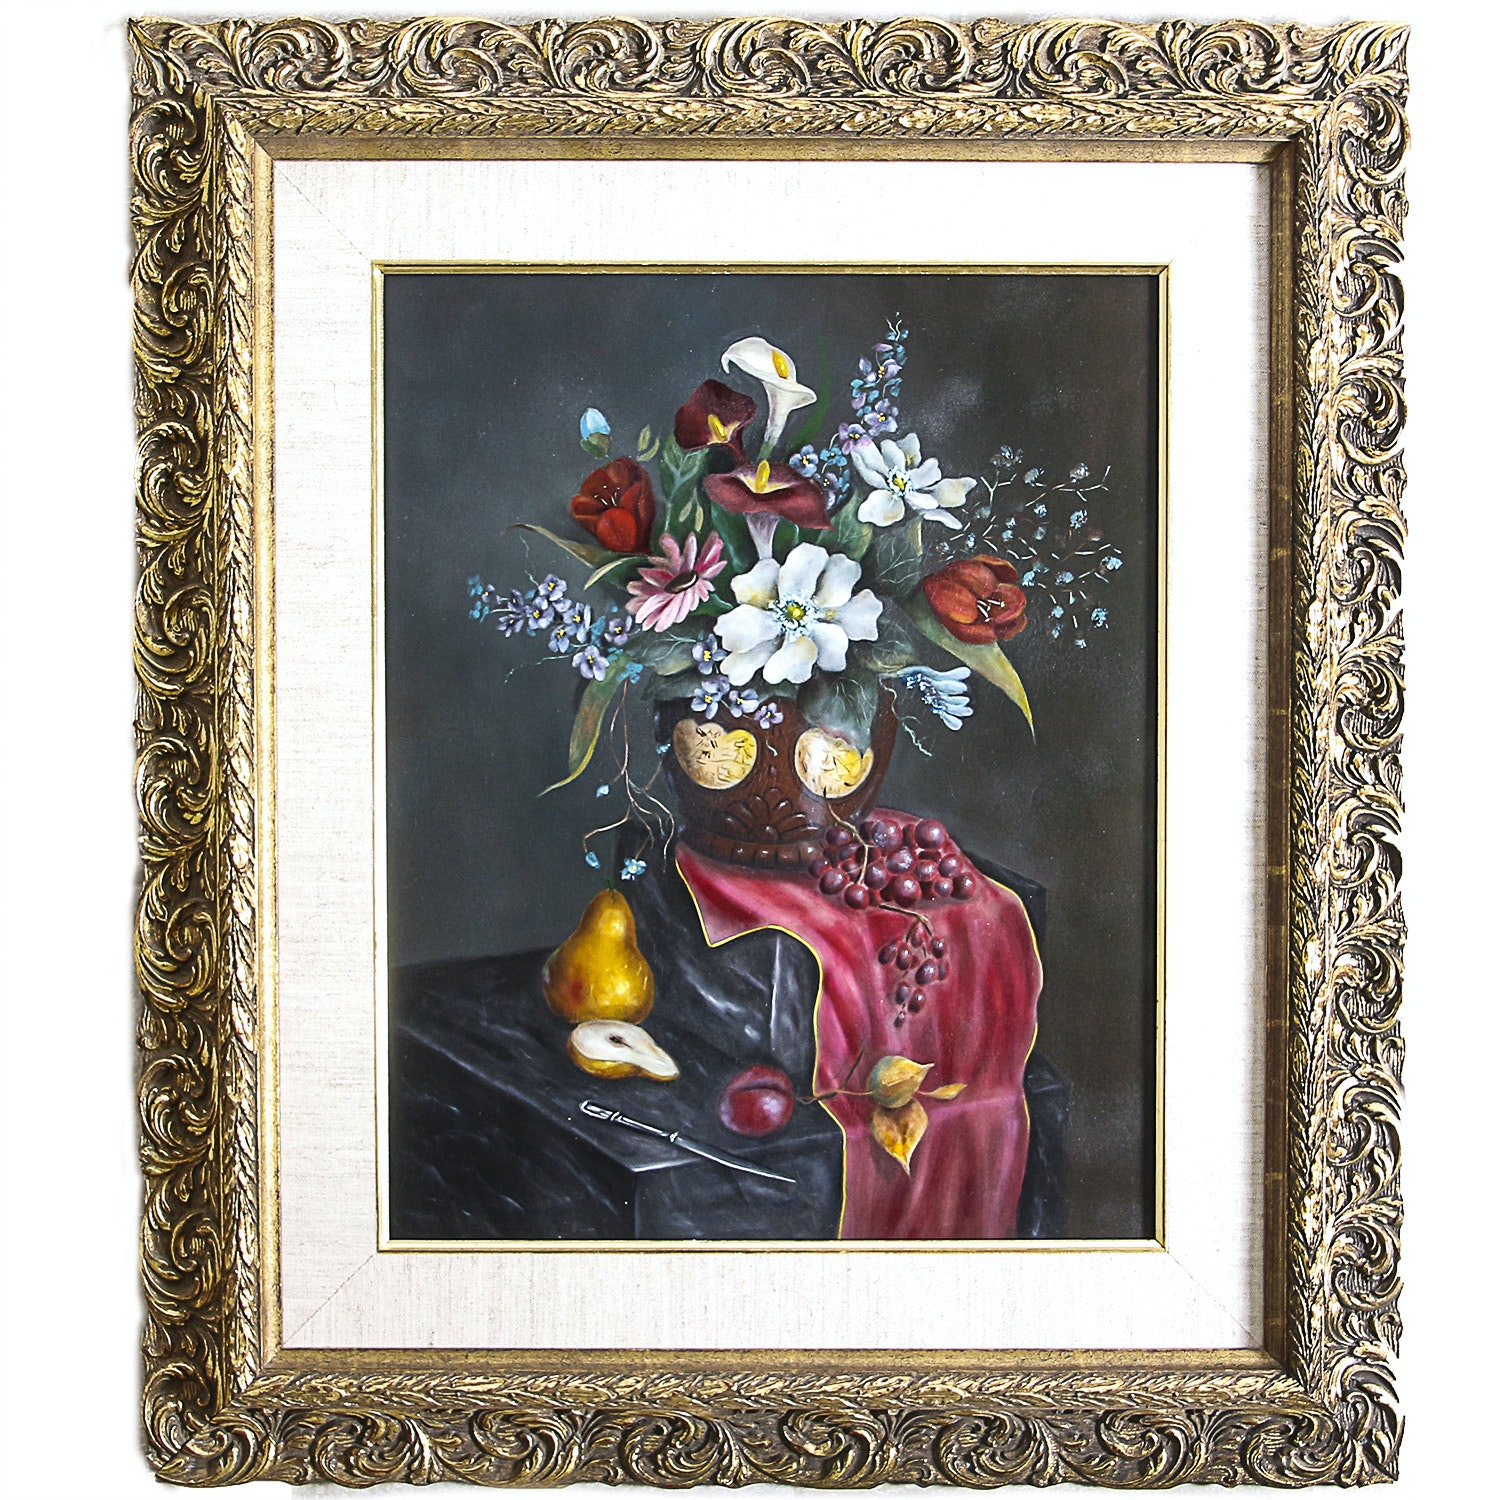 Framed Oil Painting on Masonite by Betty Nelson